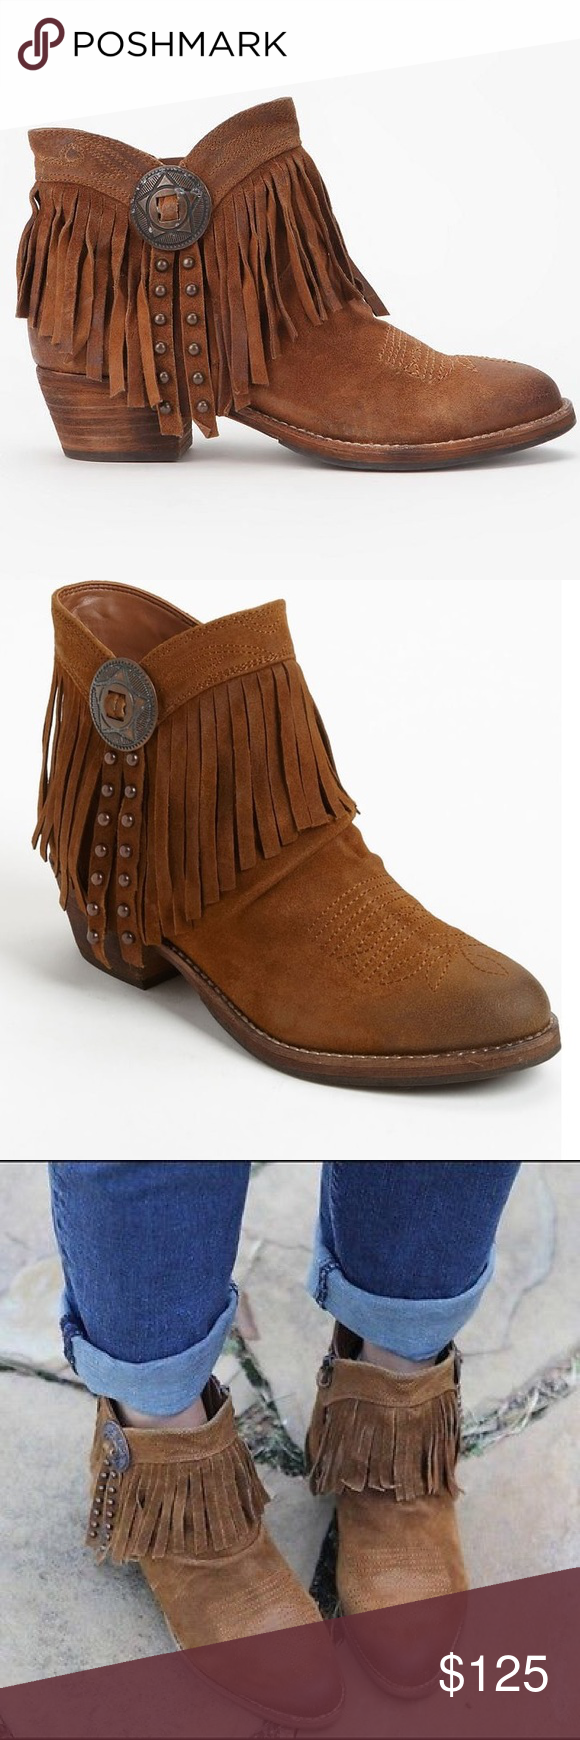 acb4011a2a19f Sam Edelman new Sidney fringe ankle booties size 9 Brand new item! Never  worn! Sold out at Nordstrom. Fringe and studs marshall Western inspiration  into a ...